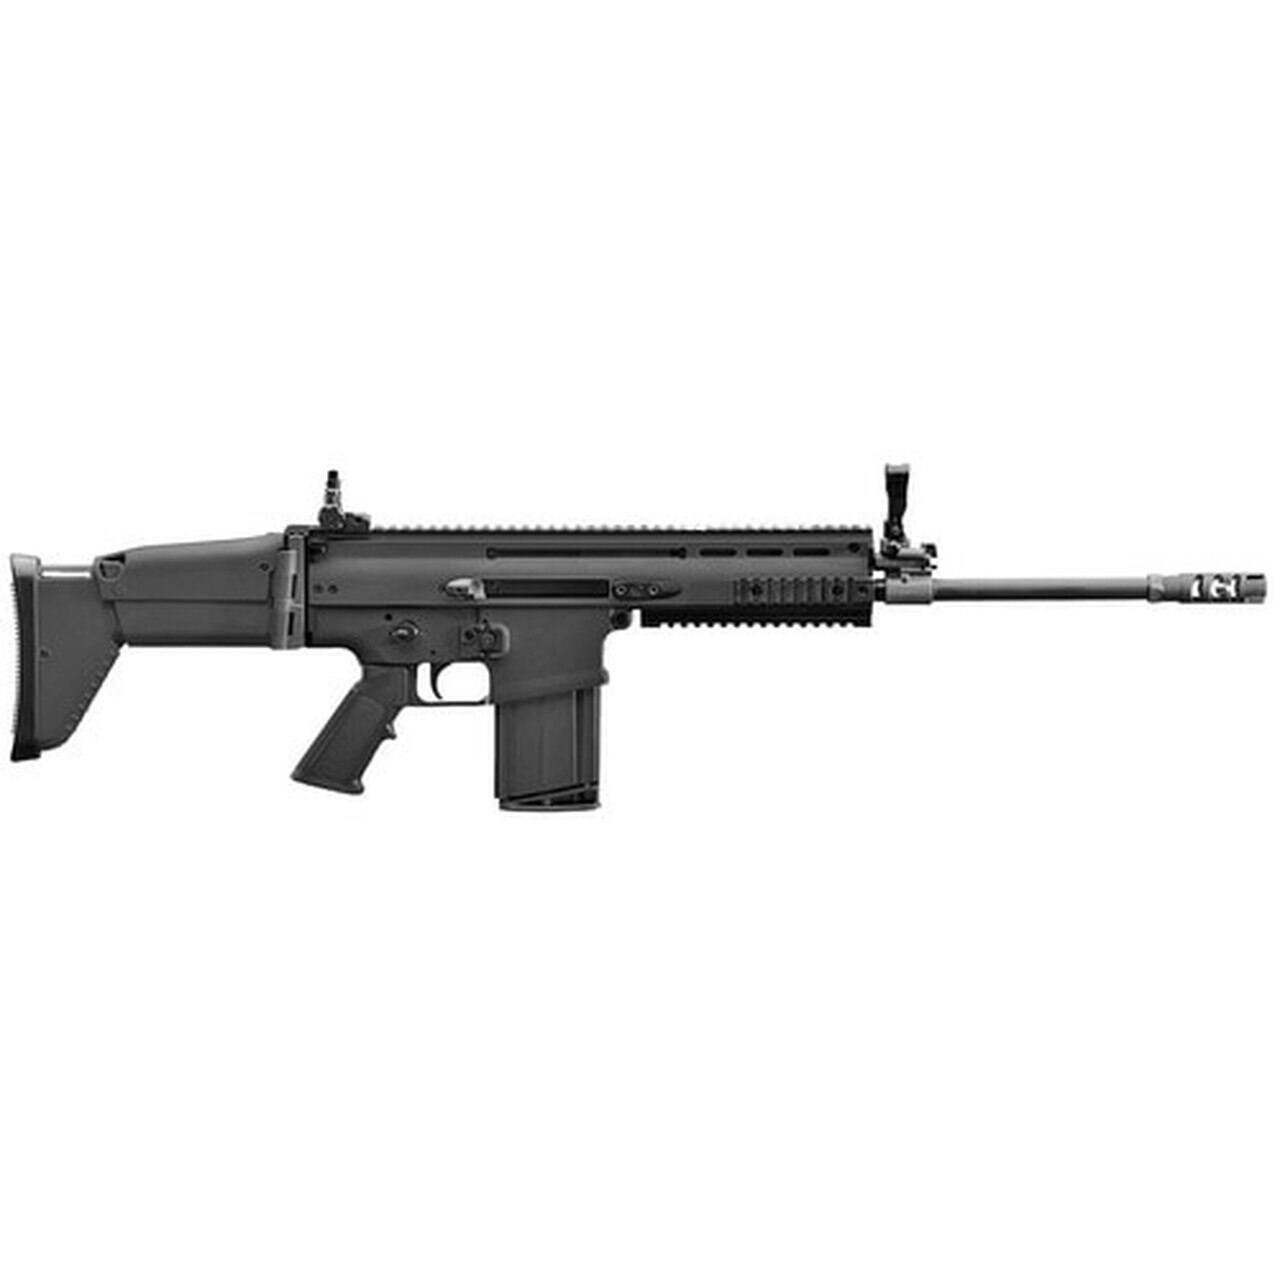 """Image of FN SCAR 17S 308 Win/762NATO, 16"""" Chrome Lined Barrel, Side Folding Stock, 20Rd, American Made"""